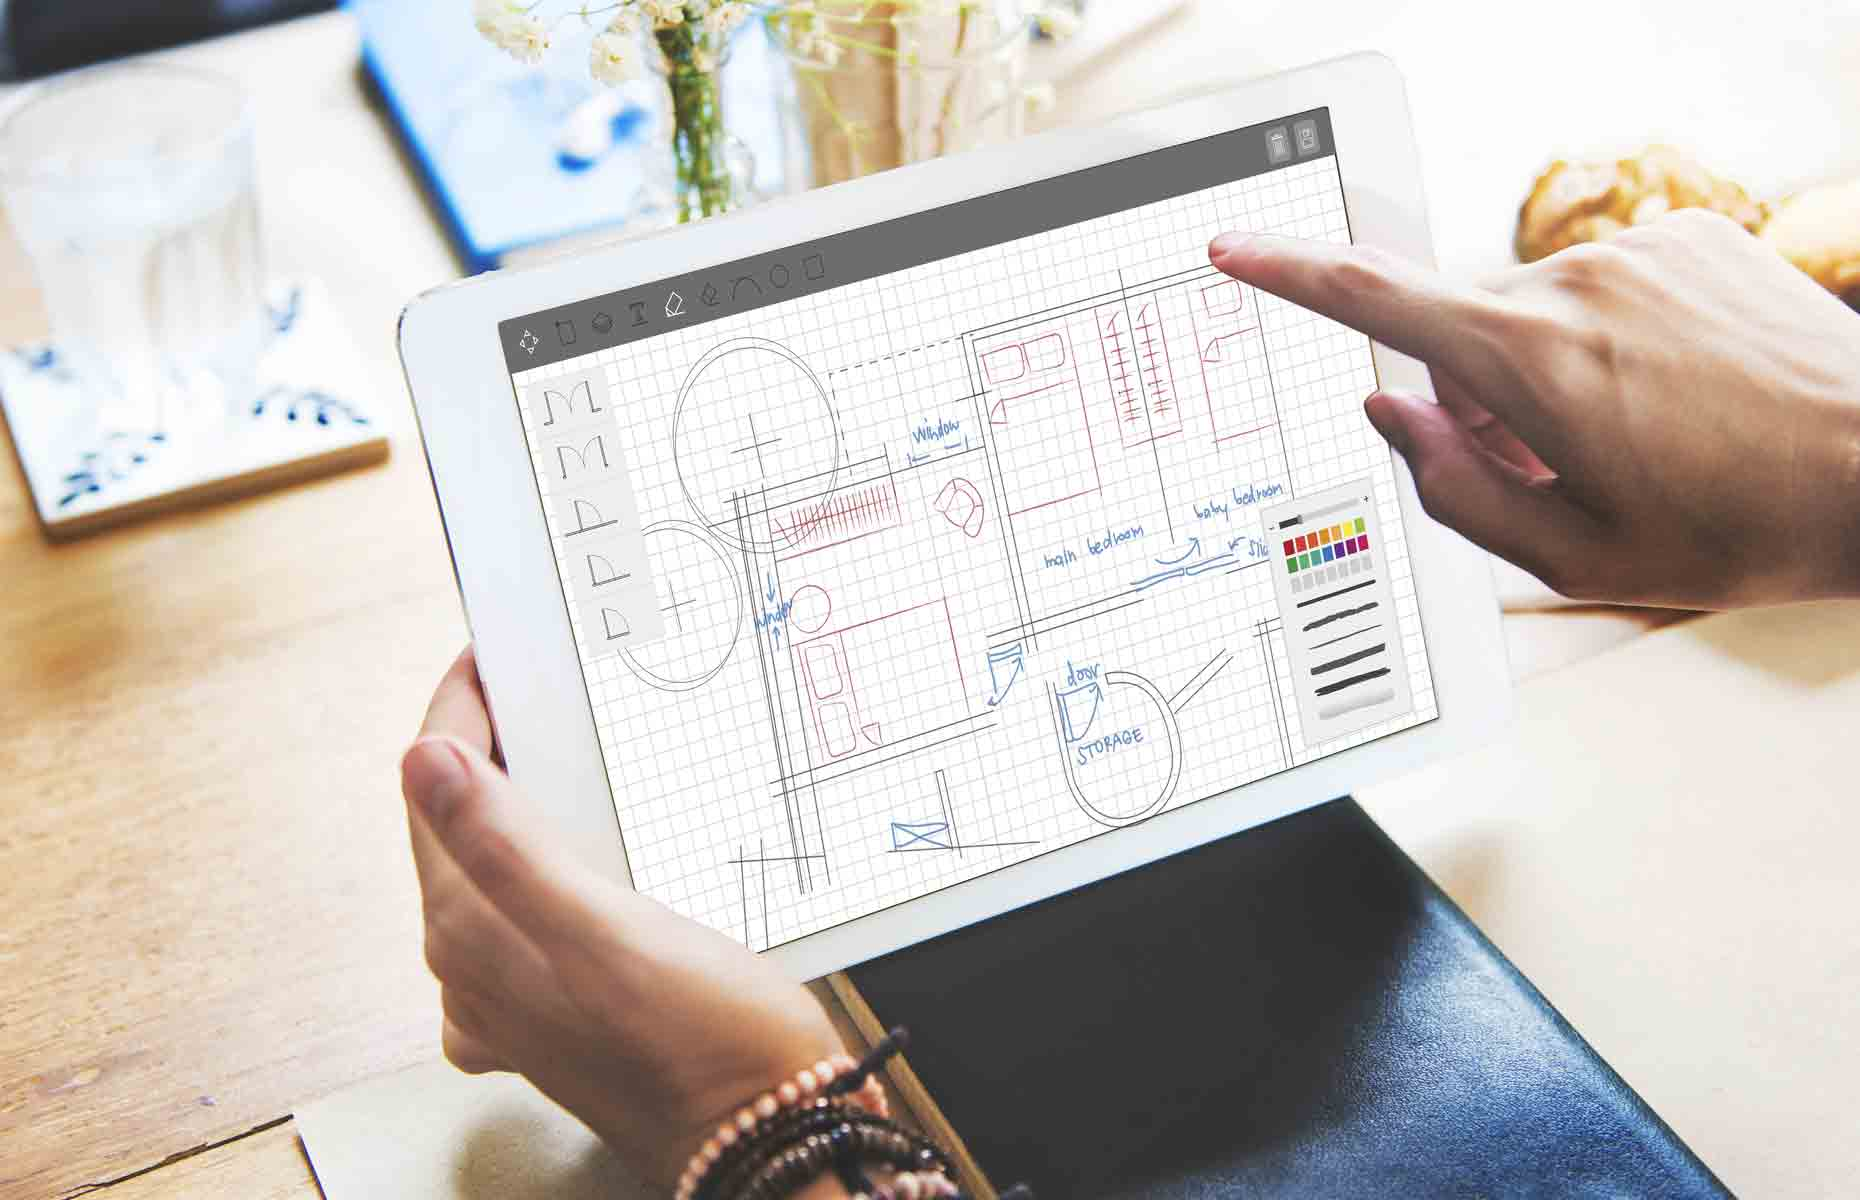 Keep floor plan illustrations as straight-forward as possible. Image: Rawpixel.com / Shutterstock